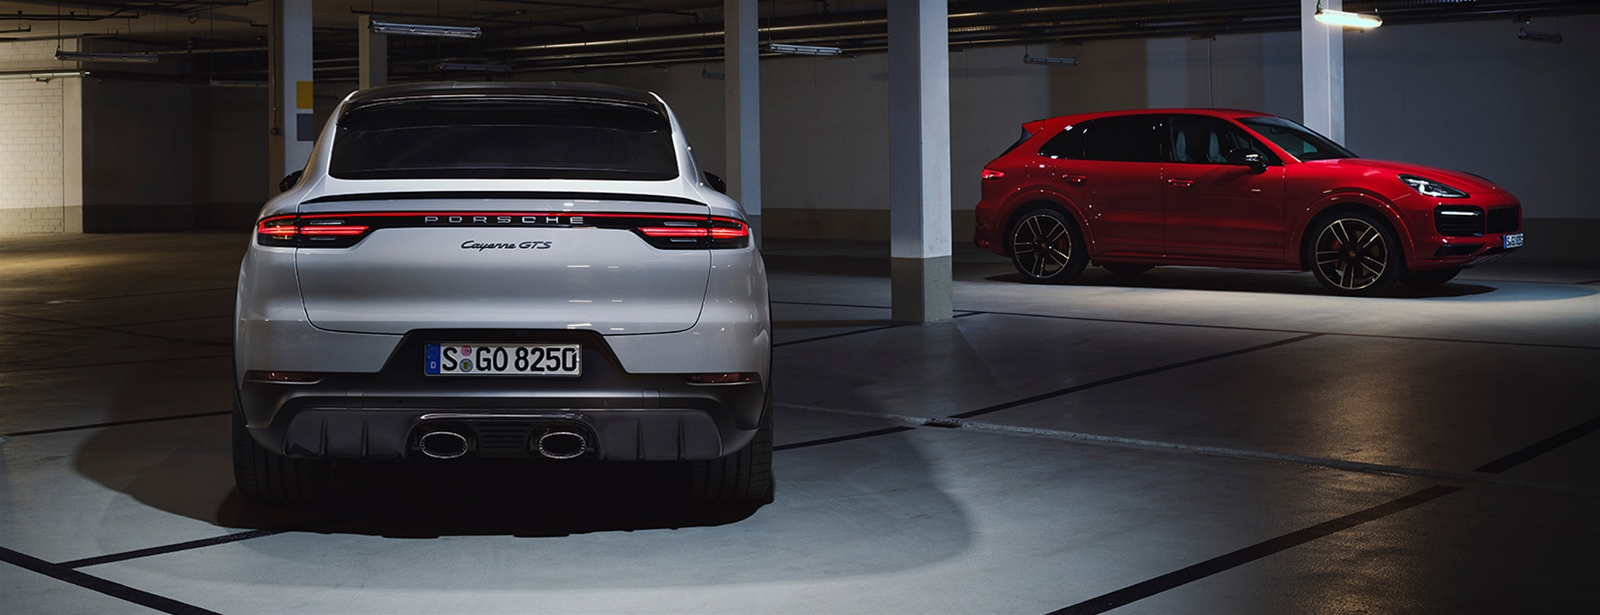 More of what you love. - De nieuwe Cayenne GTS modellen.